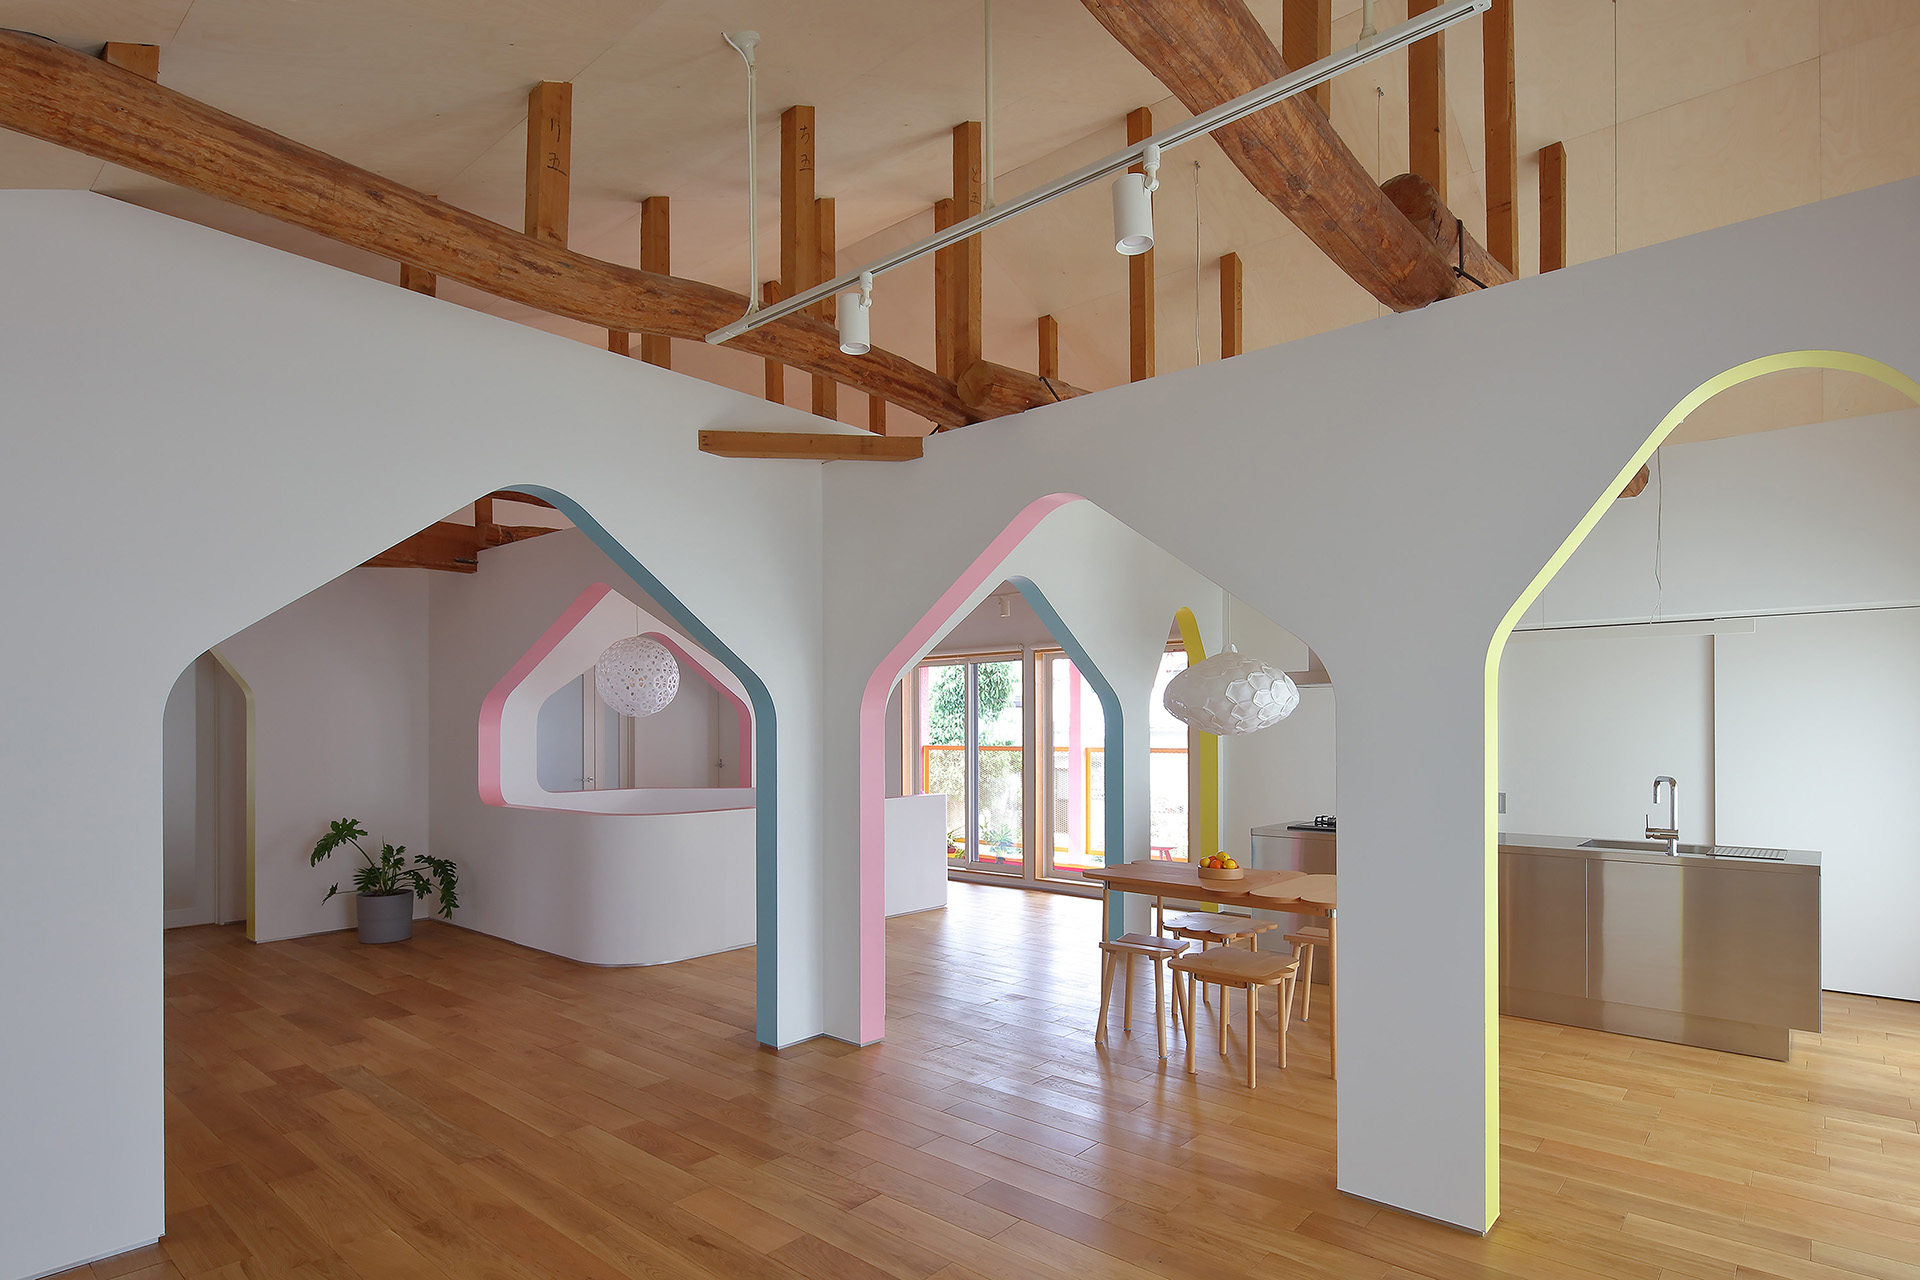 House of Many Arches by 24d-studio, Kobe, Japan arch